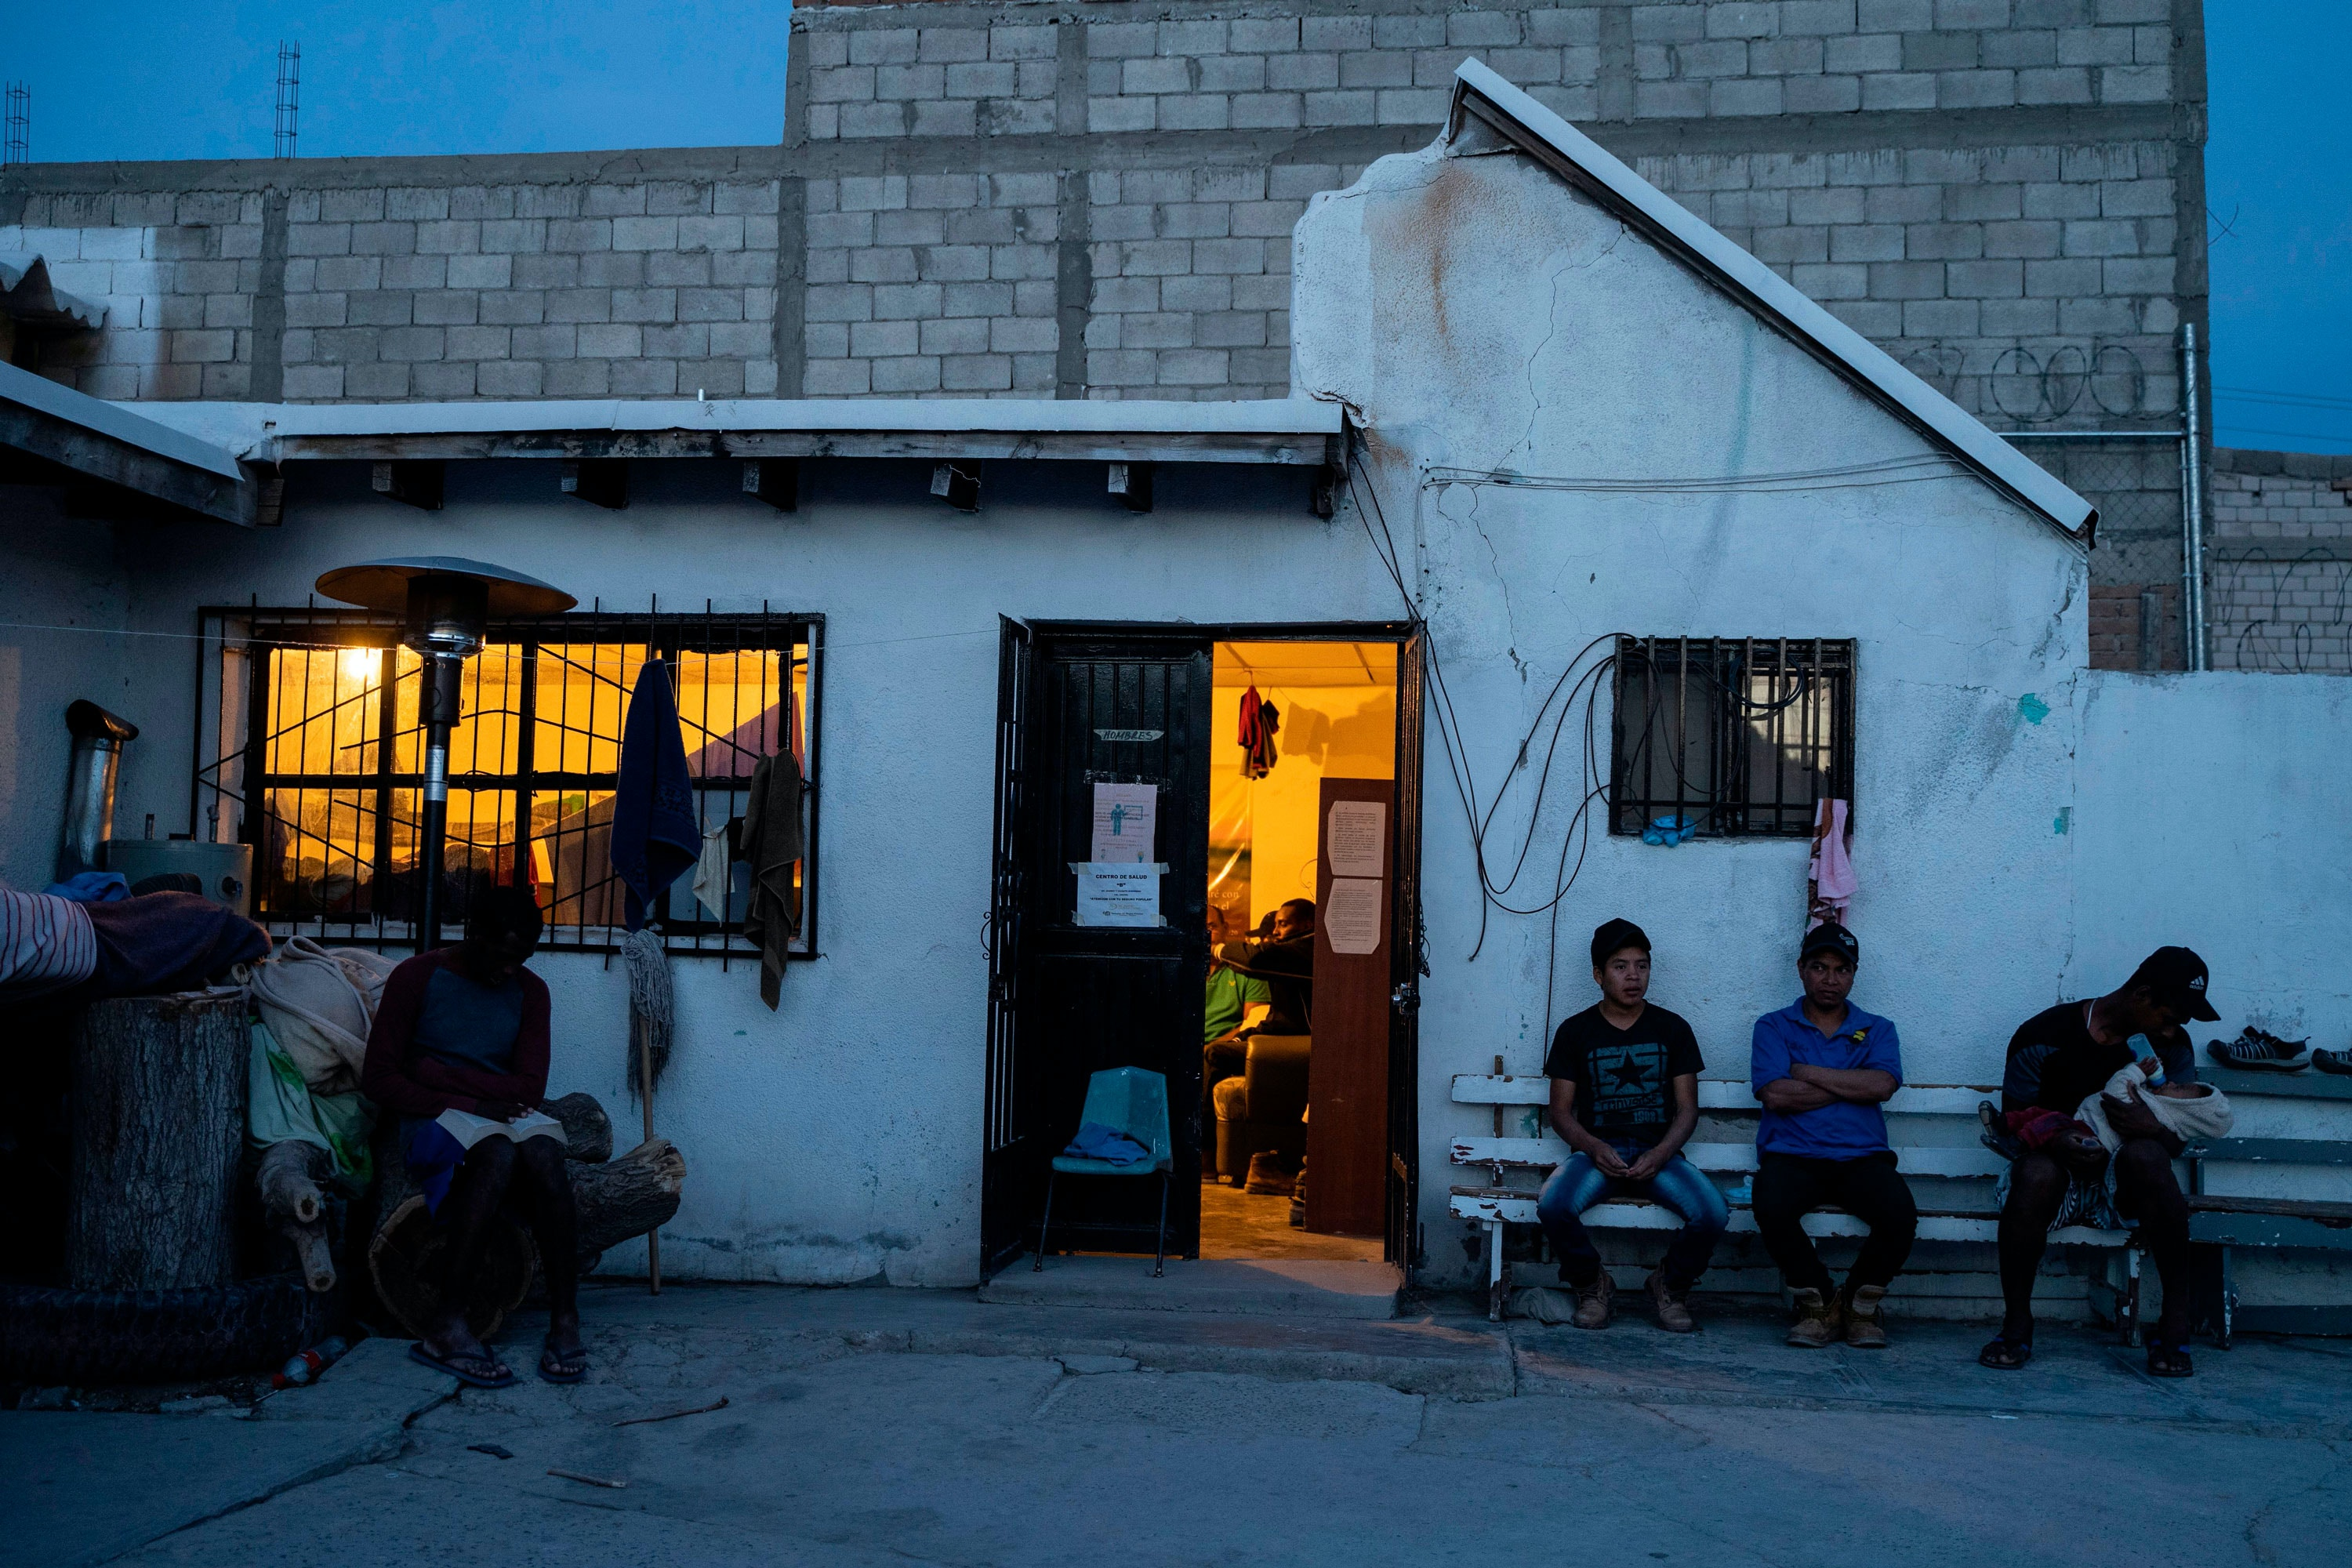 "Migrants waiting to enter the United States are pictured at dusk at Iglesia Metodista ""El Buen Pastor,"" a church run shelter for migrants, where they are being allowed to stay while they either wait for their number to be called on the metered system, or wait for their second asylum hearings, in Ciudad Juarez, Chihuahua State, on May 18, 2019. - About 7,000 migrants are waiting to enter the United States via El Paso, either by the metered number system, or those which are part of the remain in Mexico policy, Migrant Protection Protocols. Those that are part of MPP are made to wait out their asylum claims on the Mexican side of the Border, where they are vulnerable to criminals looking for an easy target, extortionists, corrupt police, among other dangers."